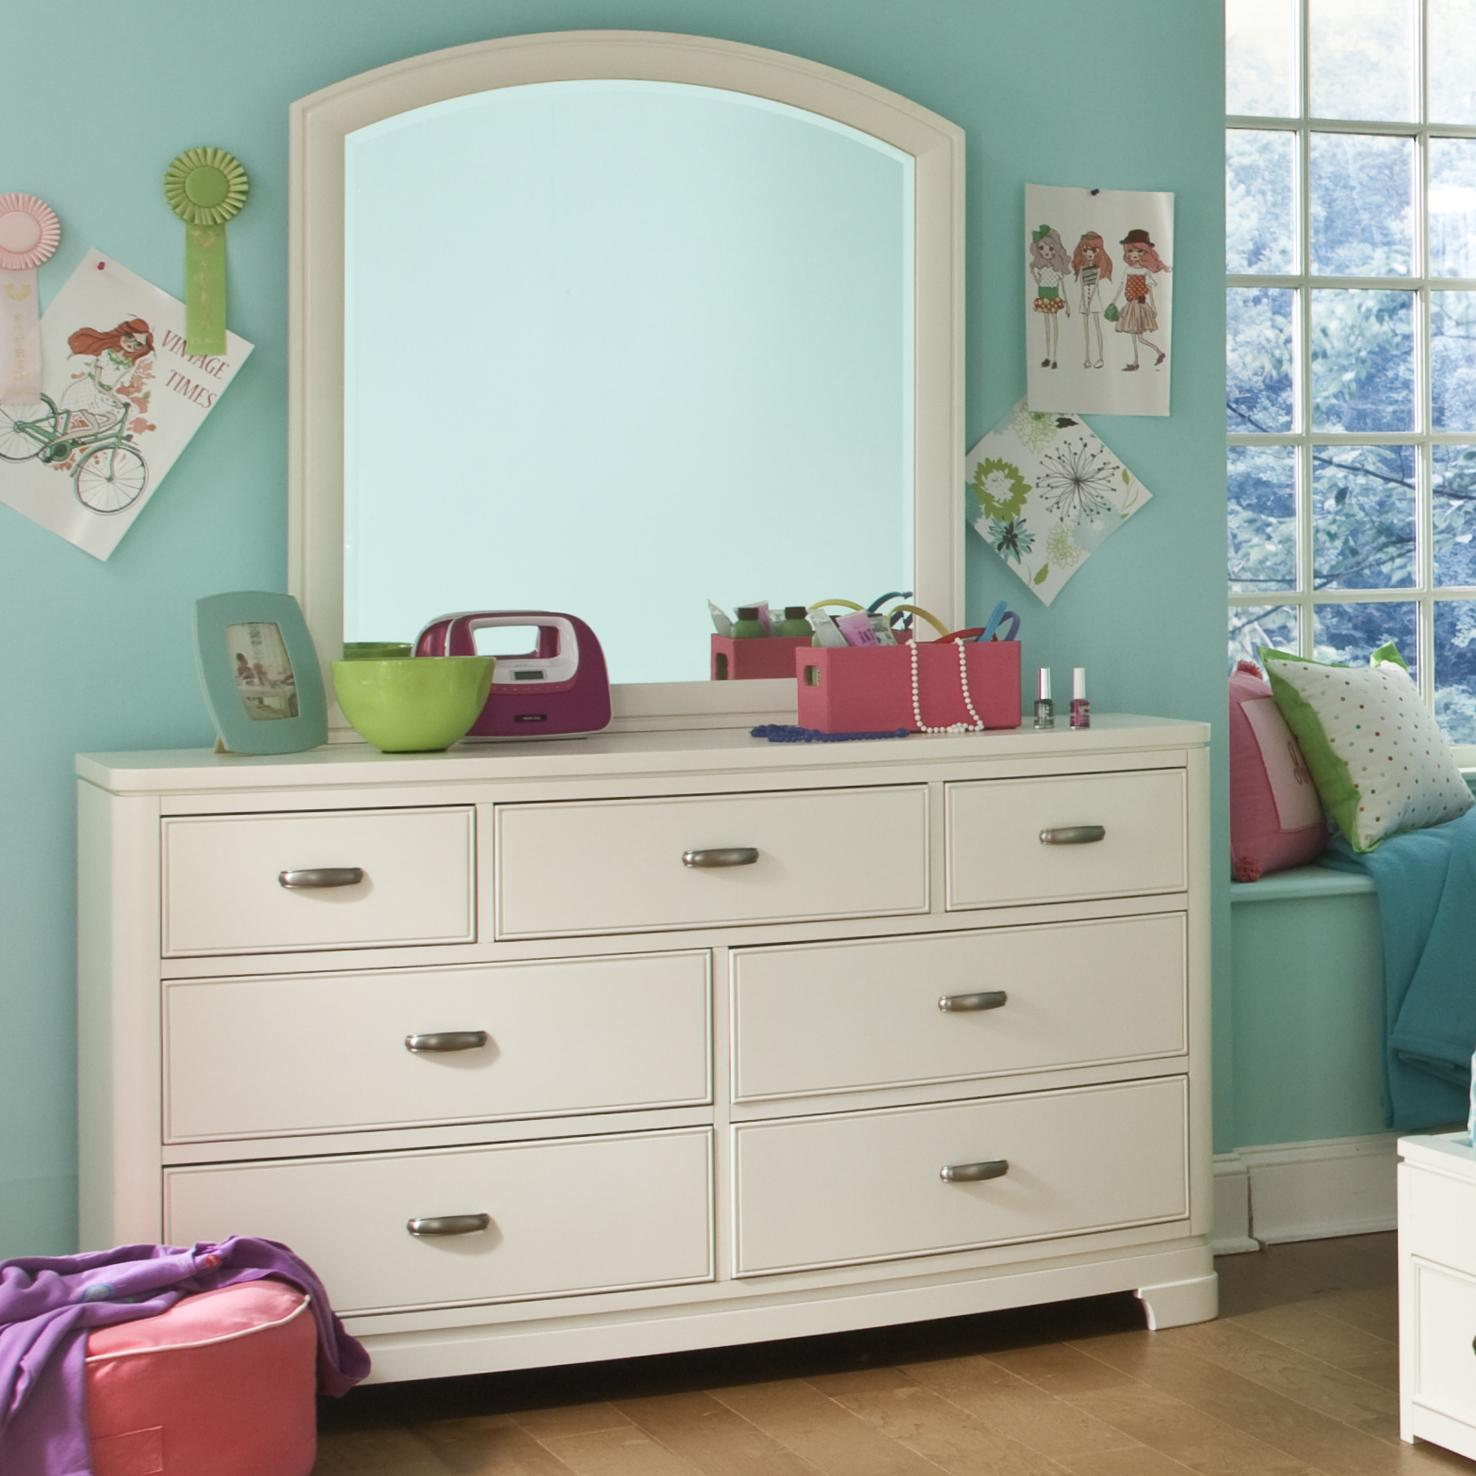 Legacy Classic Kids Park City White Dresser with Arched Mirror - Item Number: 9910-1100+0300